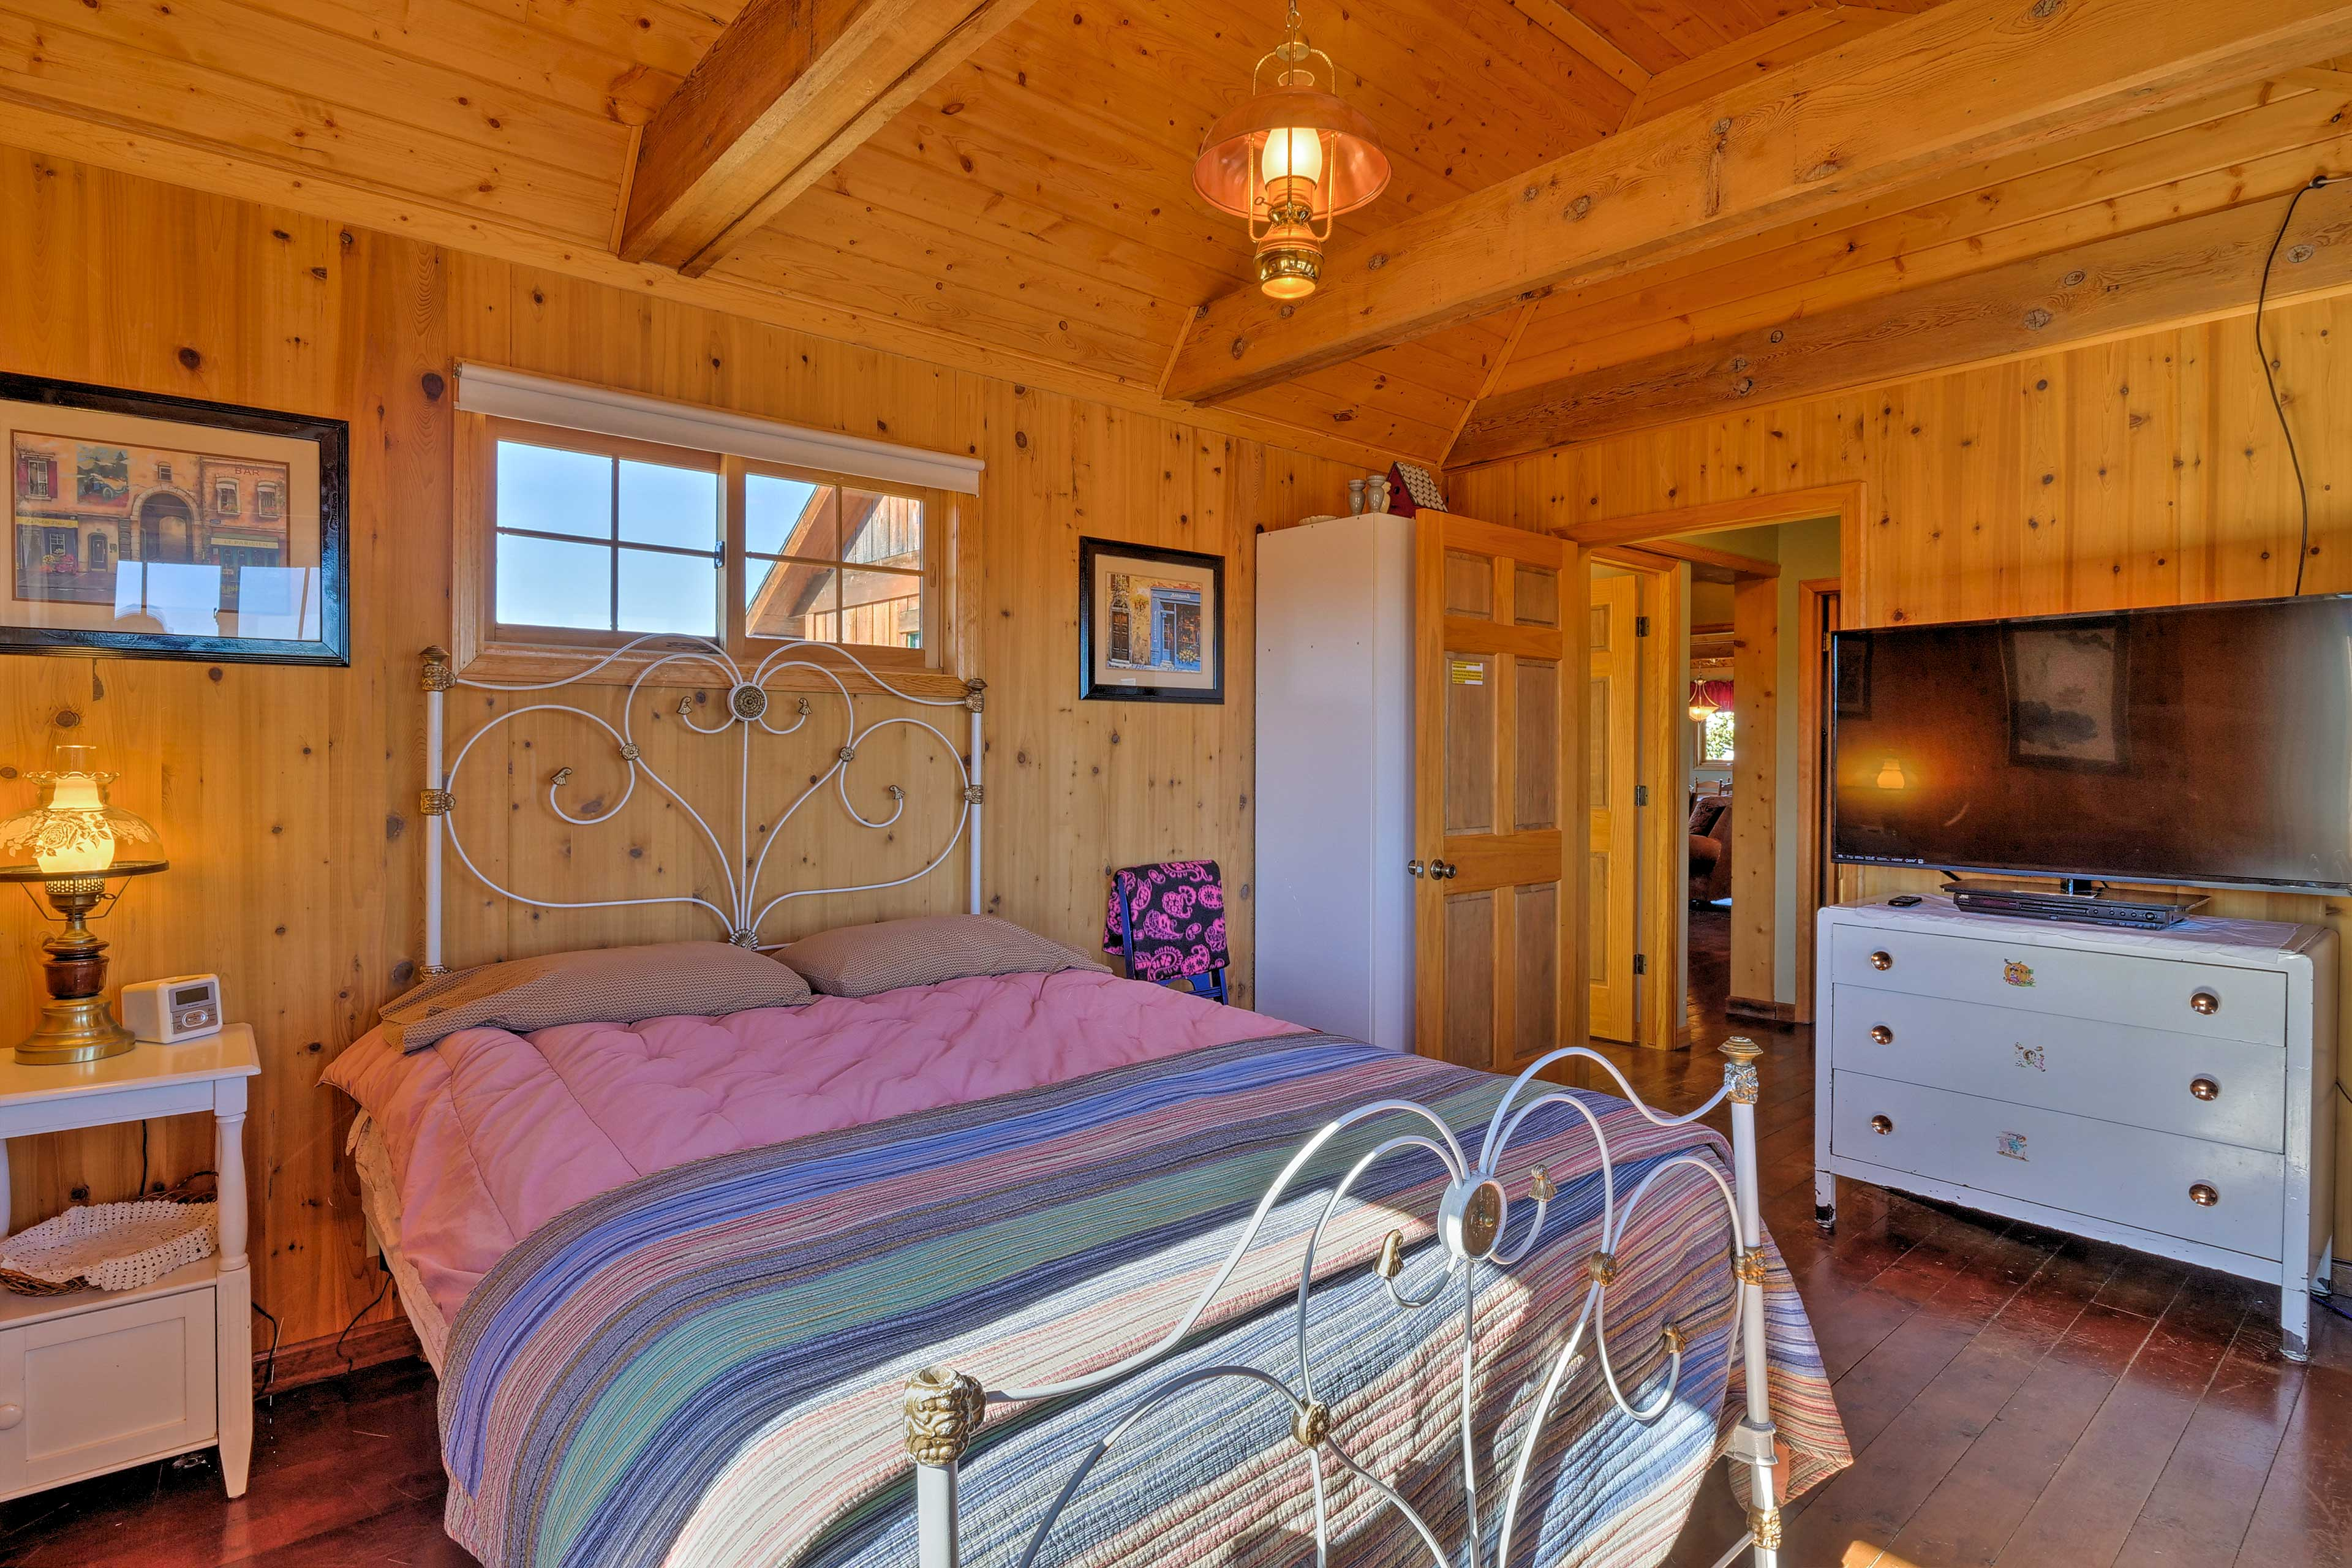 After a thrilling day on the mountain, sleep easy in this comfortable bed.